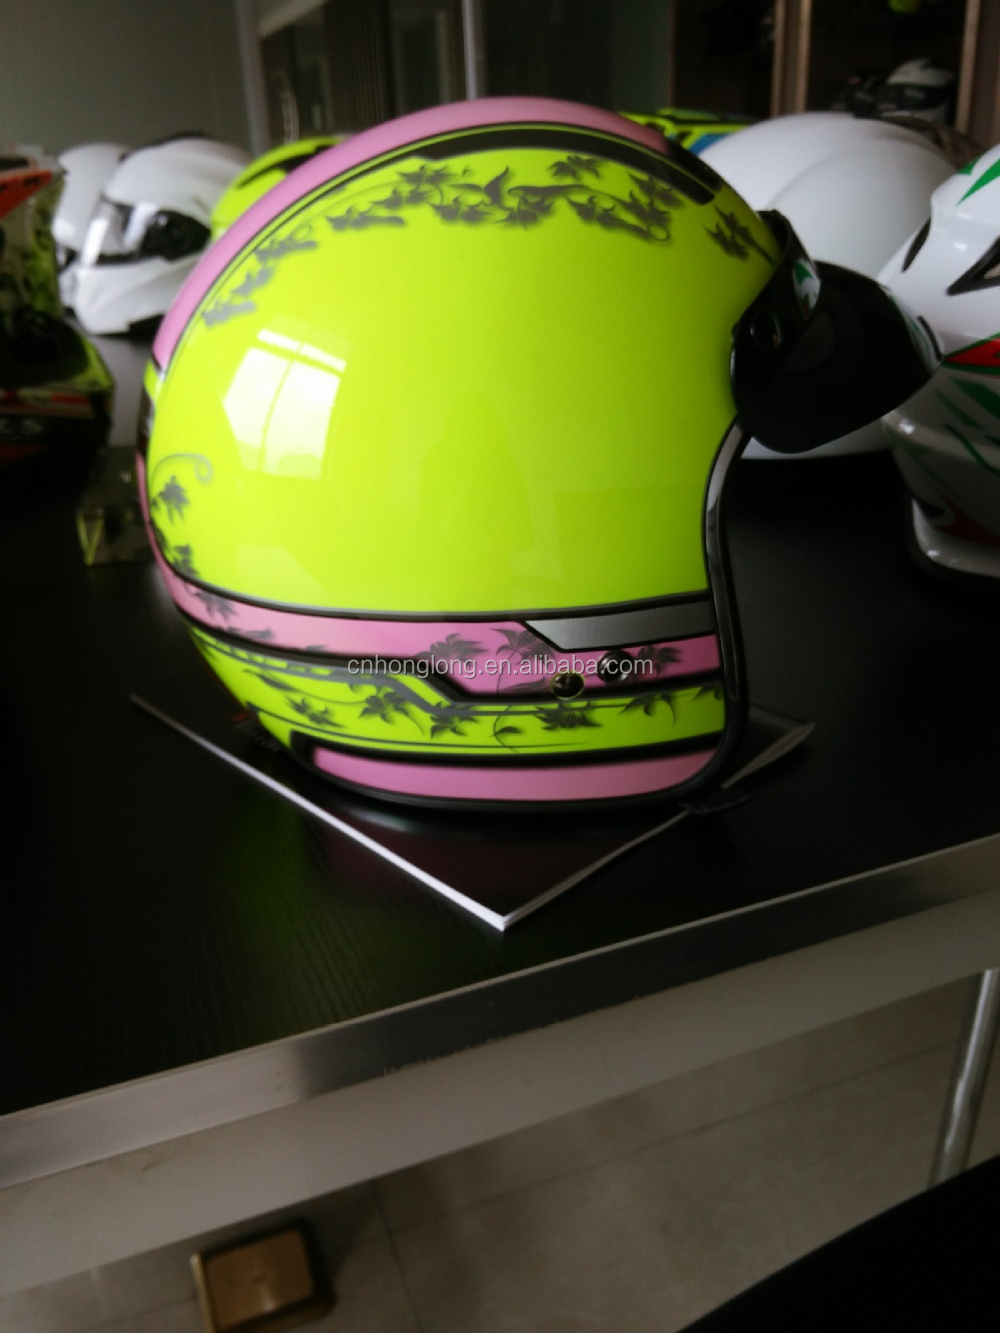 Professical open face helmet,high quality ,ECE Approved